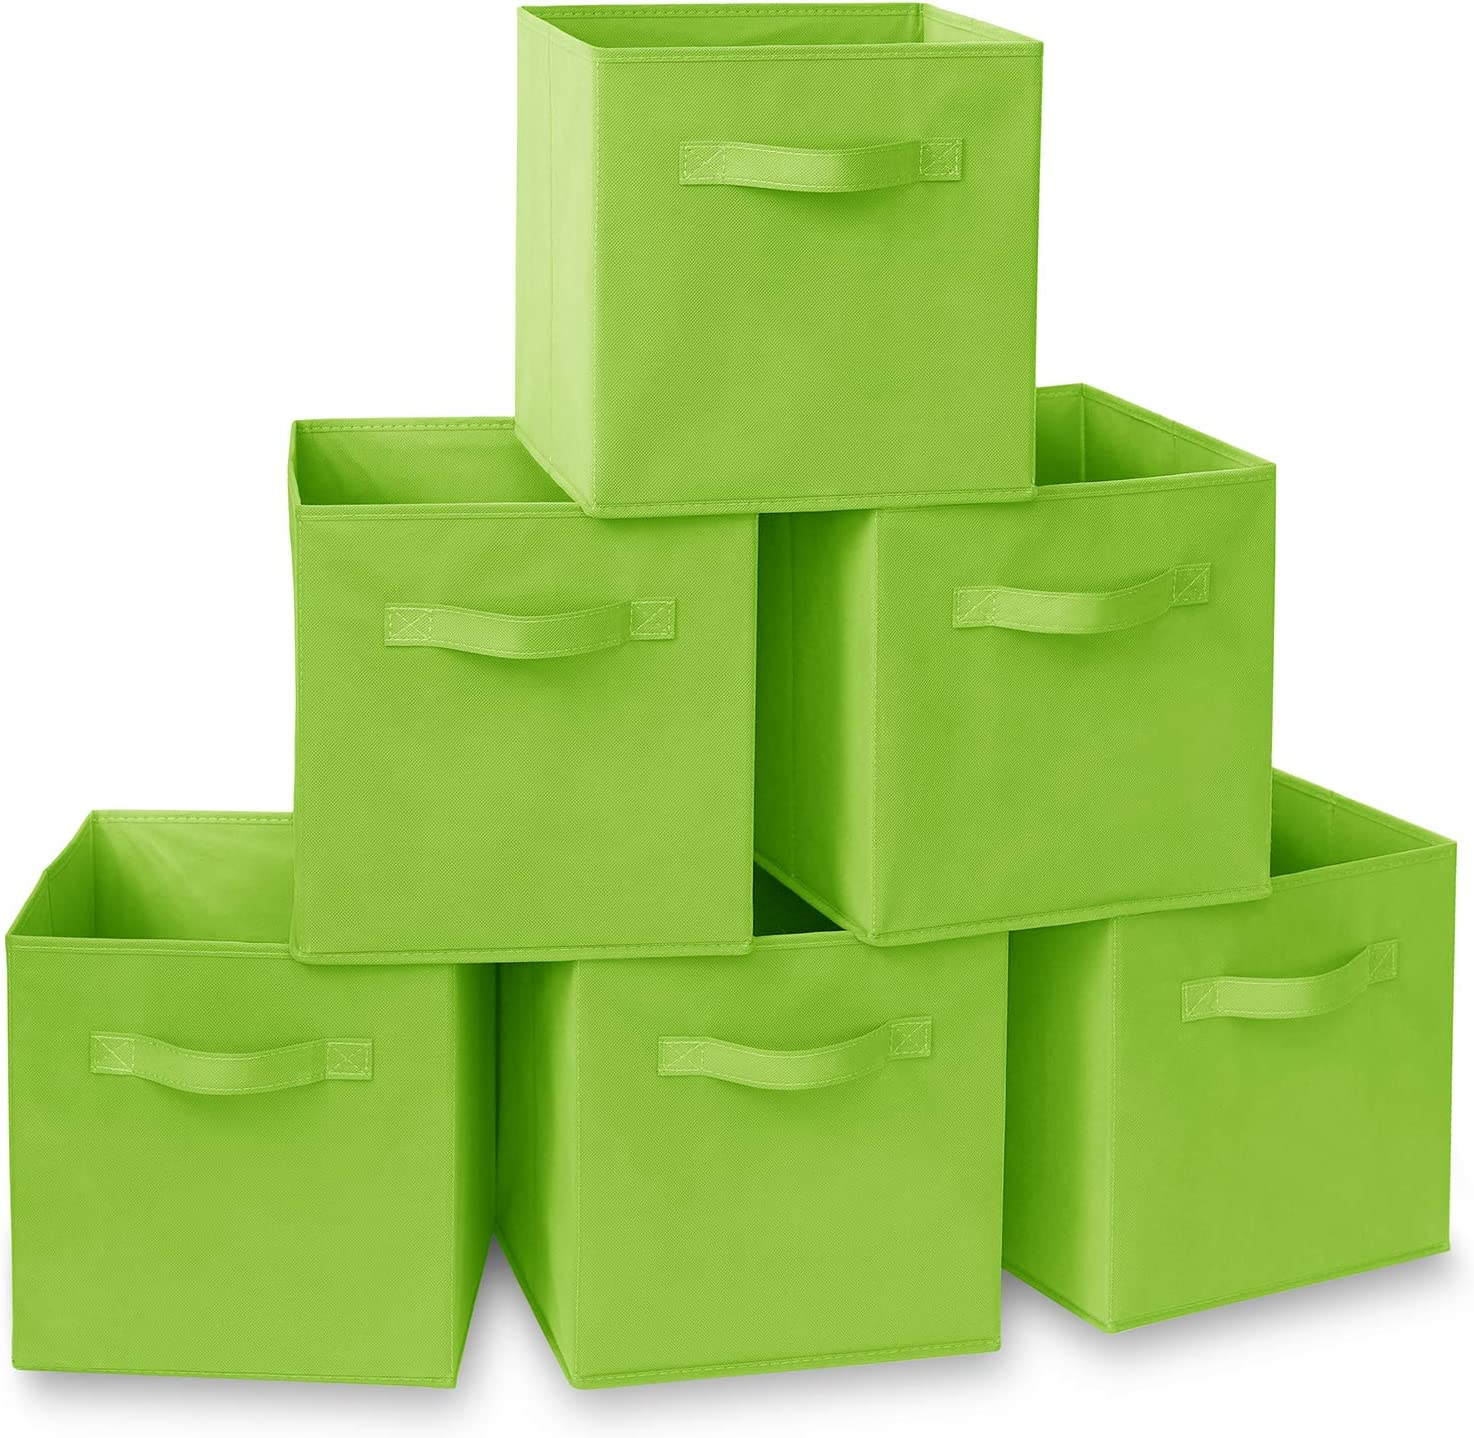 """Casafield Set of 6 Collapsible Fabric Cube Storage Bins, Lime Green - 11"""" Foldable Cloth Baskets for Shelves, Cubby Organizers & More"""